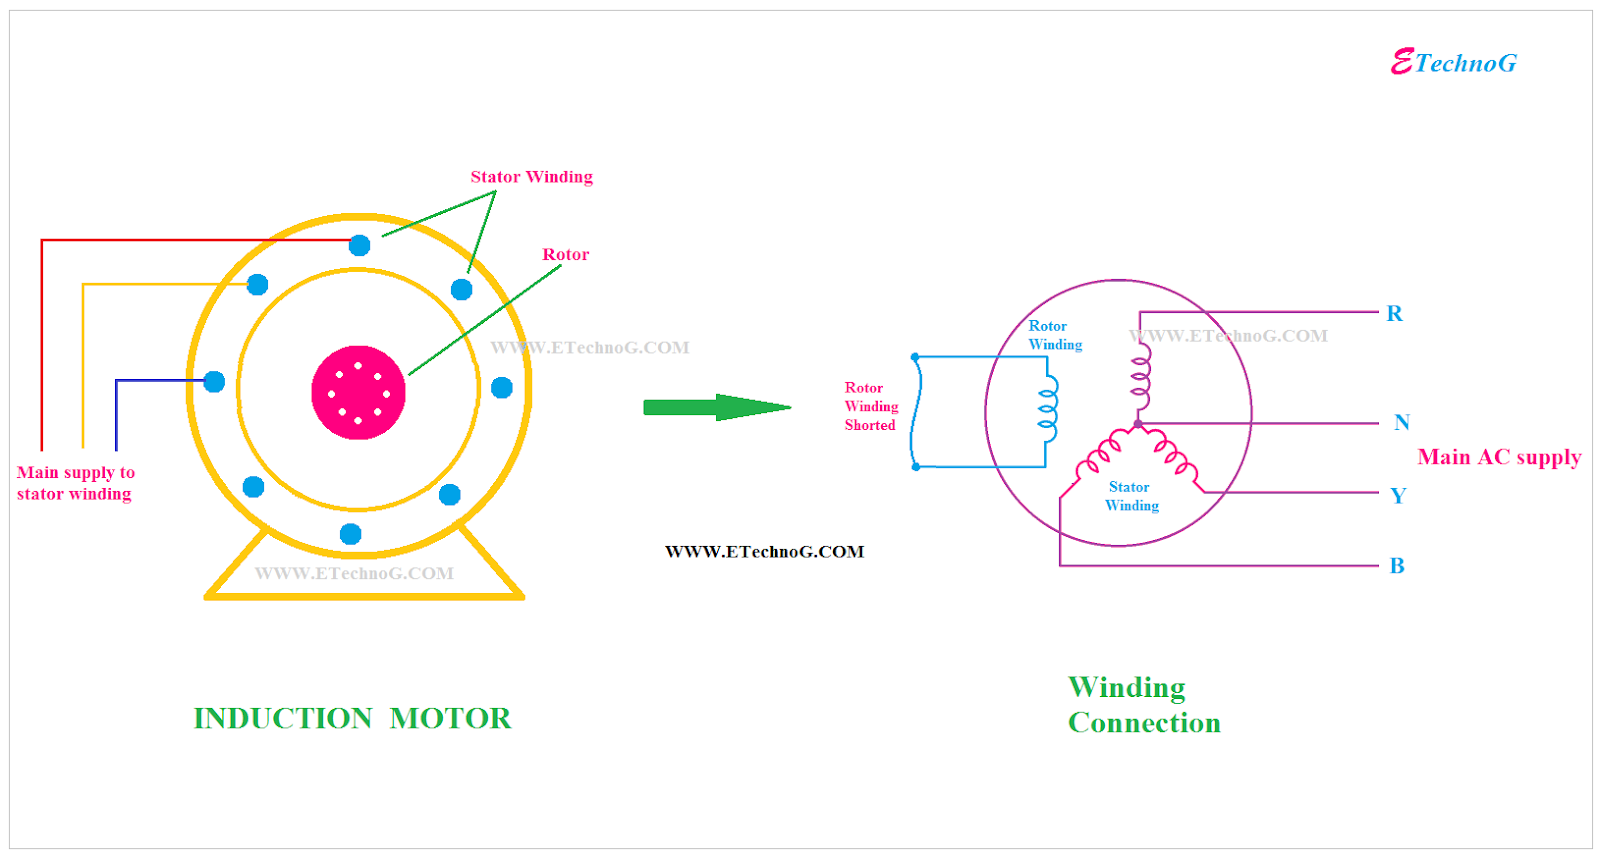 Why Three Phase Induction Motor Self-Starting but Synchronous Motor on